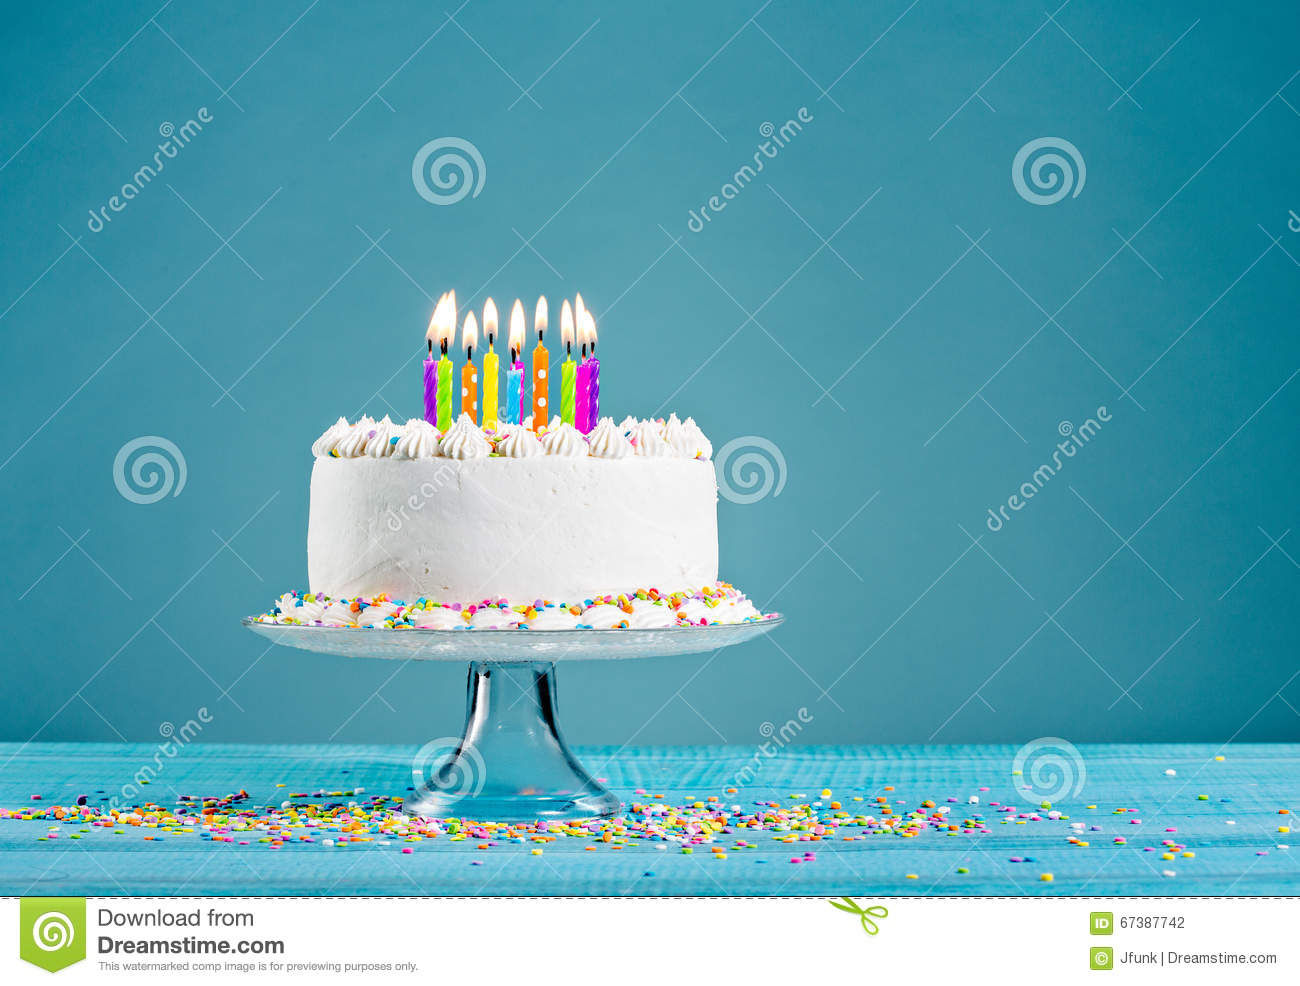 Download Birthday Cake with Candles stock photo. Image of happy - 67387742